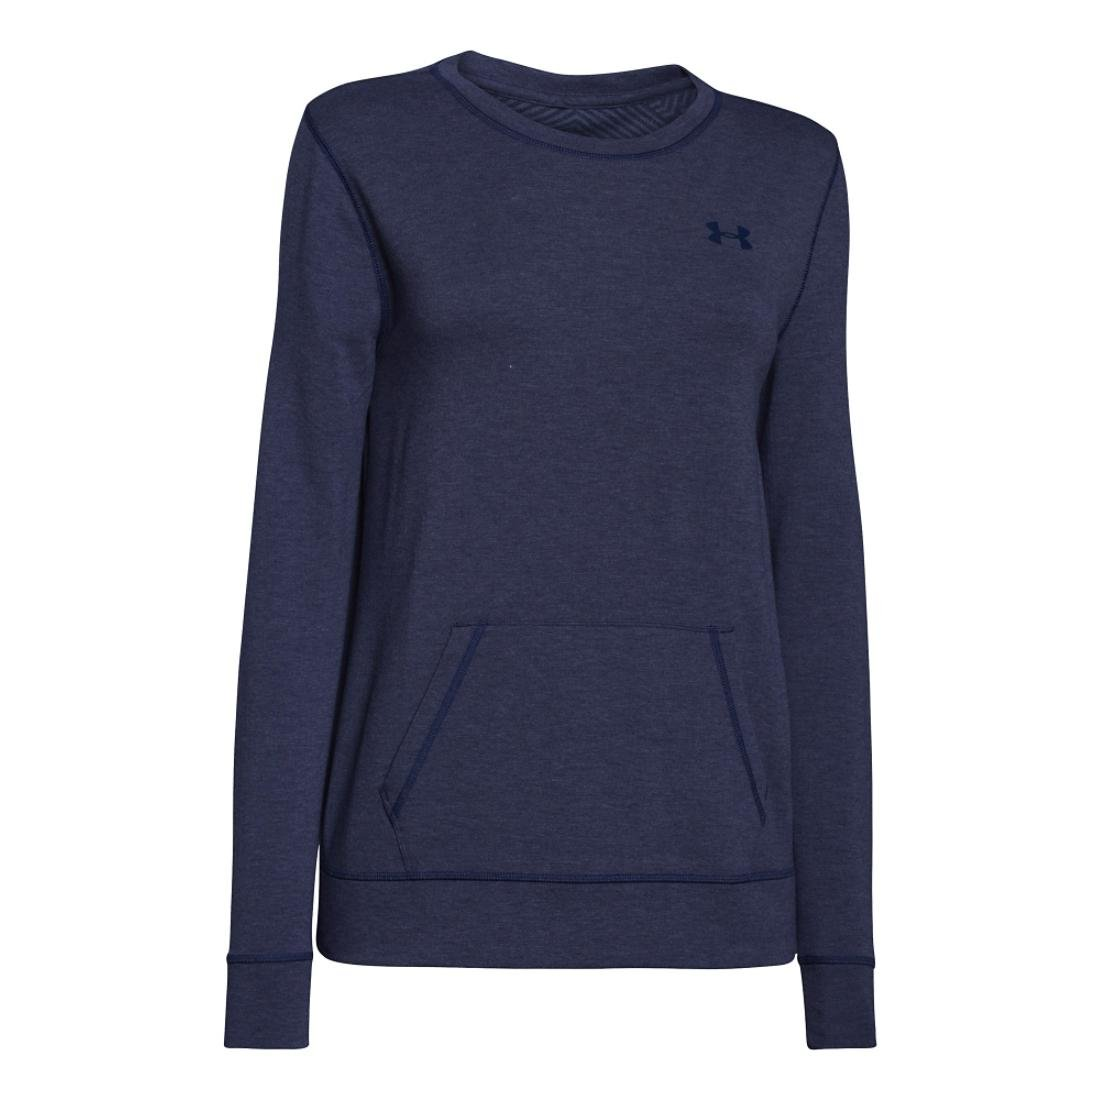 Under Armour ColdGear Infrared Womens Cozy Crew Top